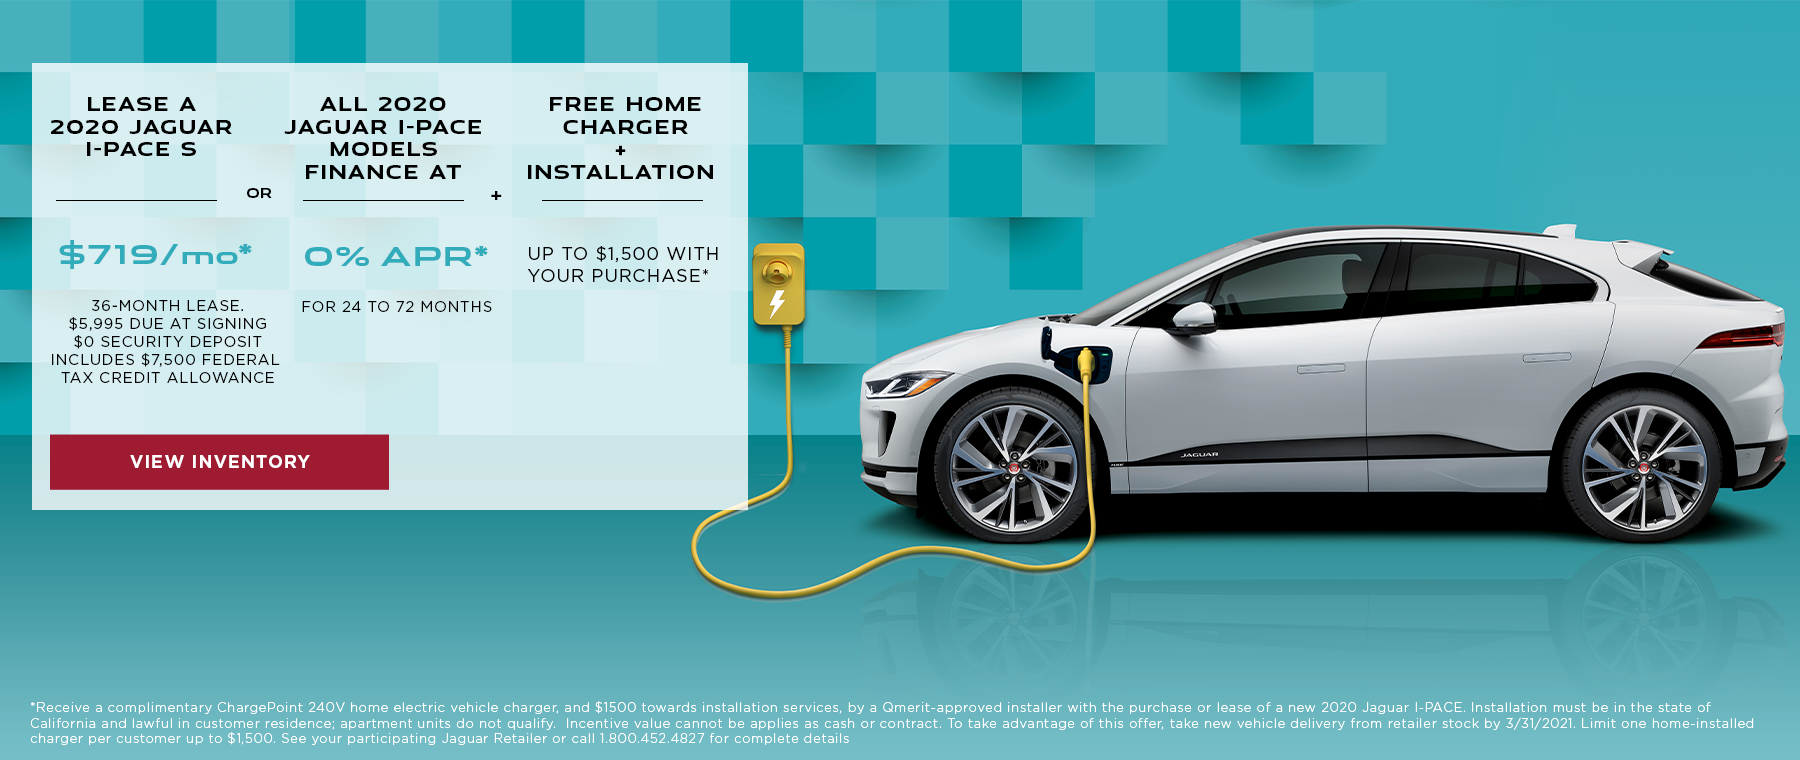 Jaguar I-PACE Incentive DI Large